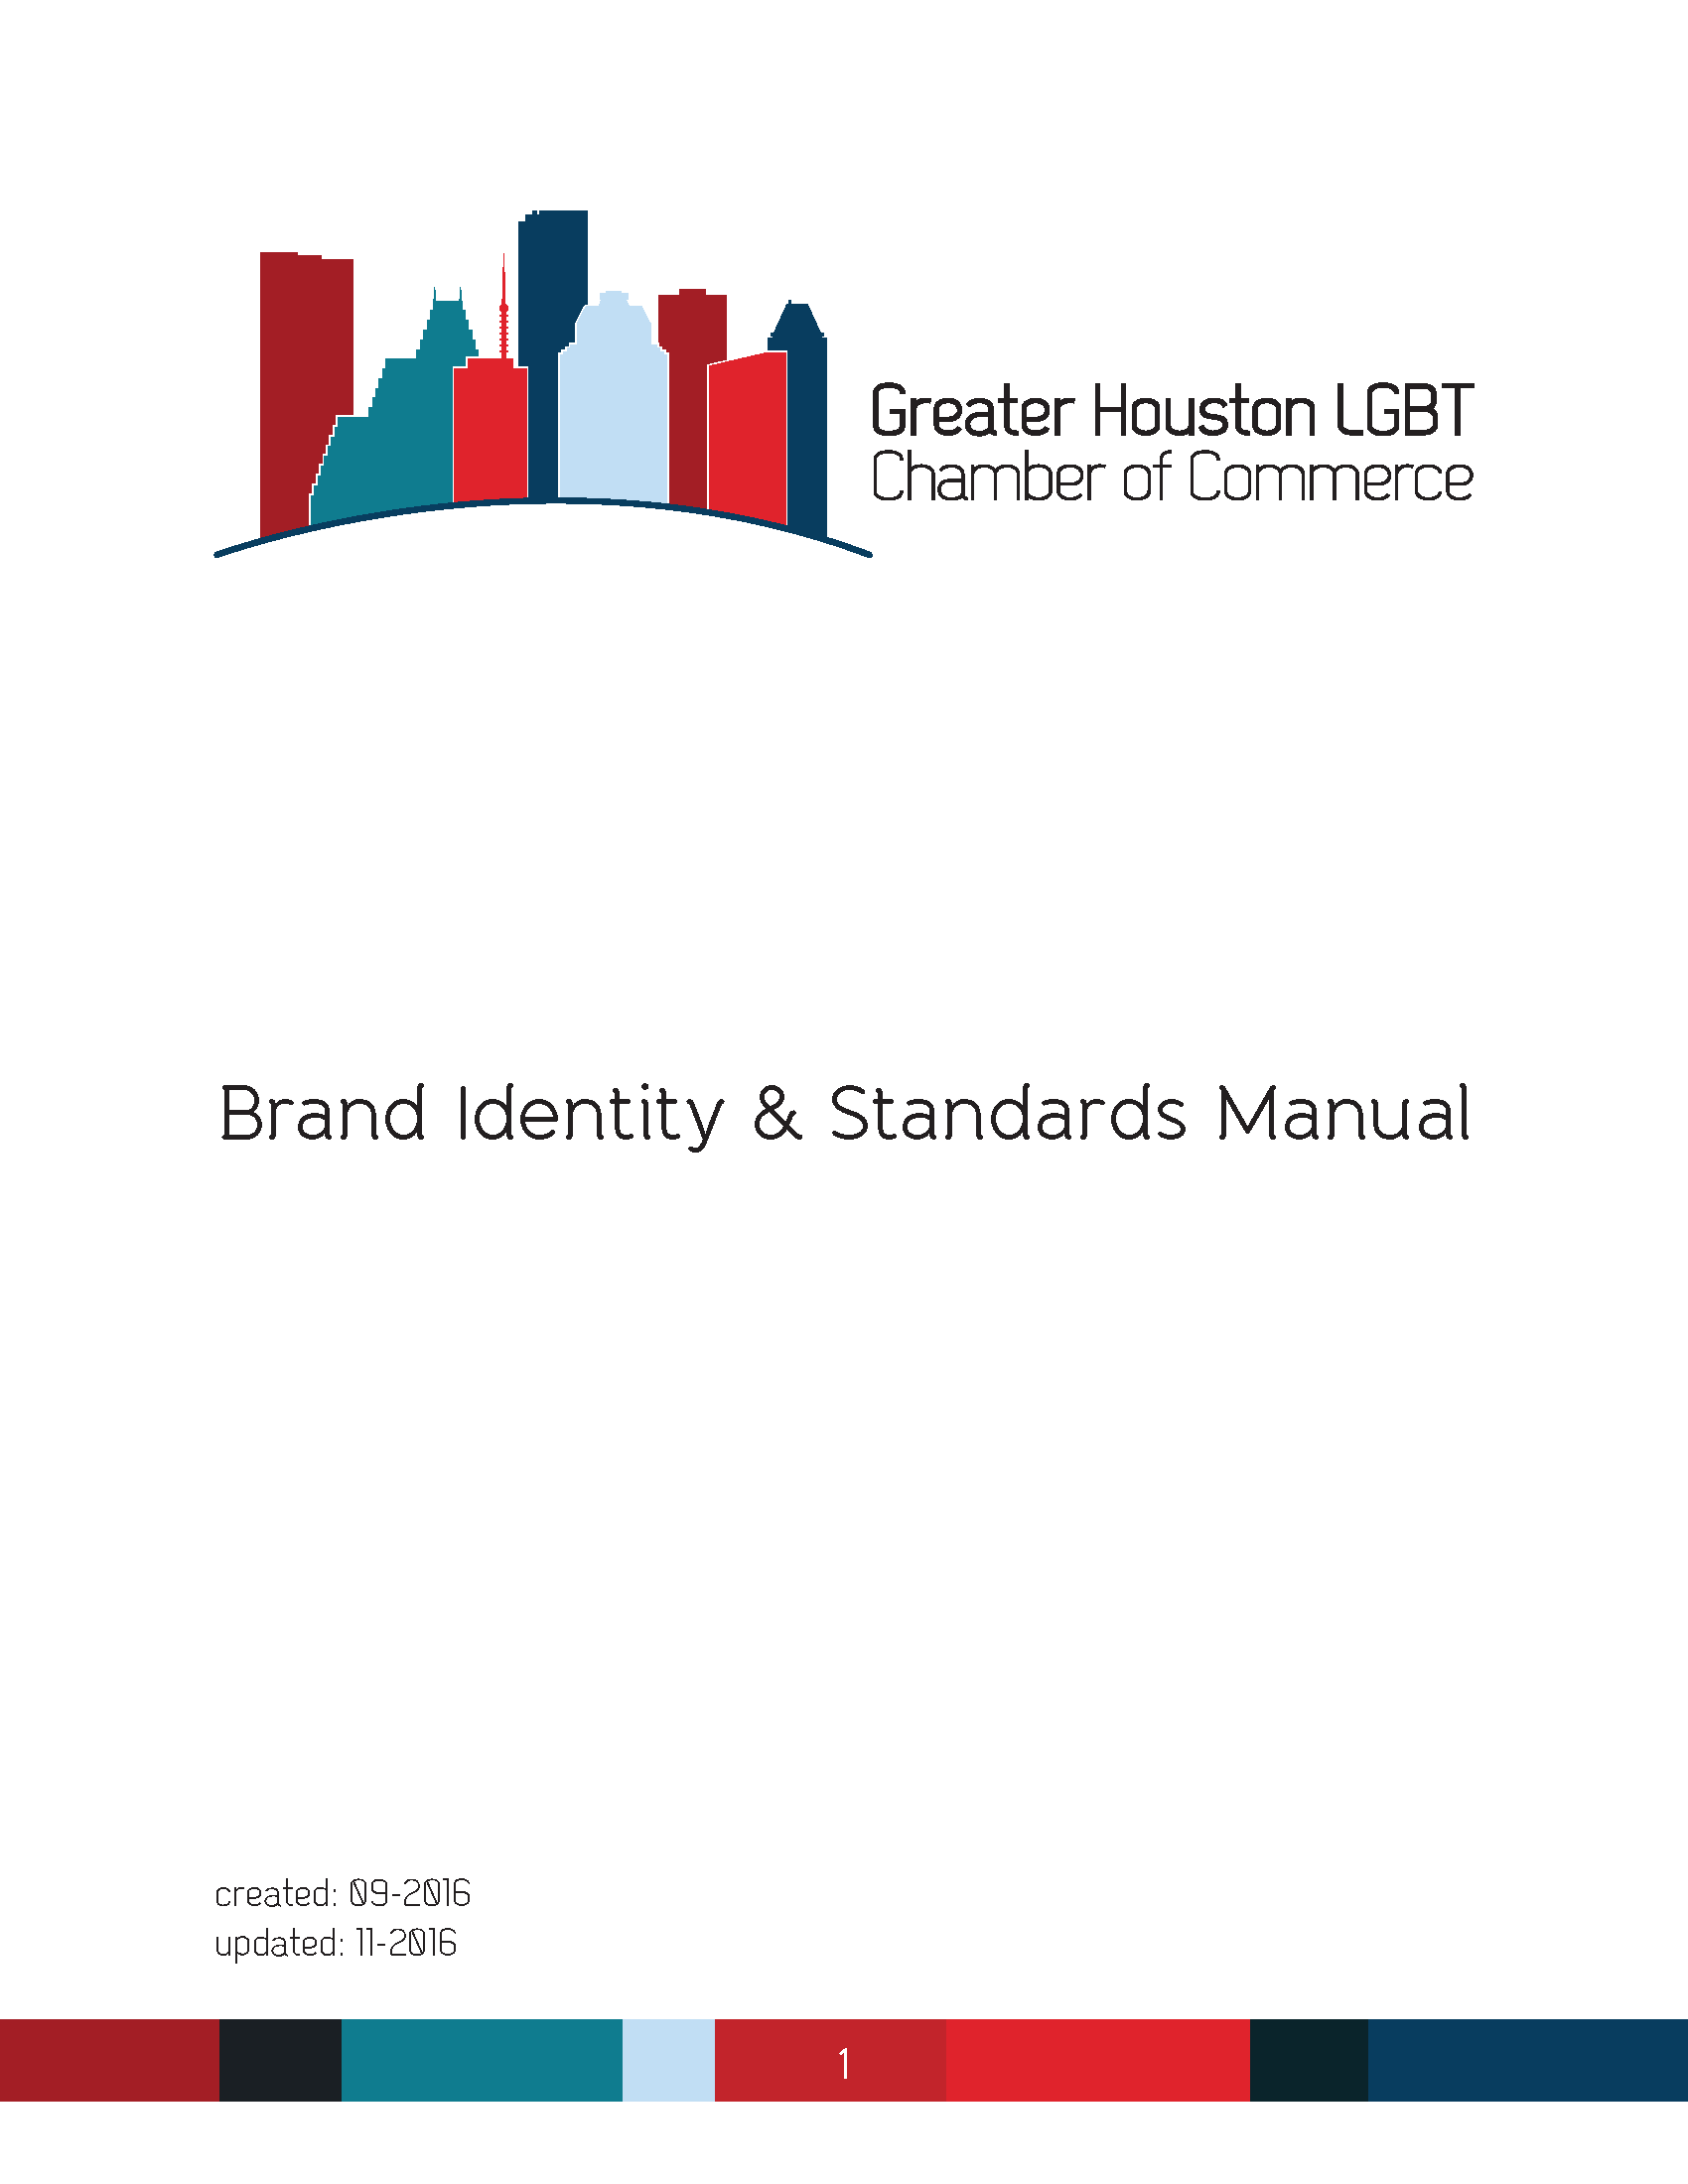 Pages from GH_LGBT_CoC_Brand_Guide